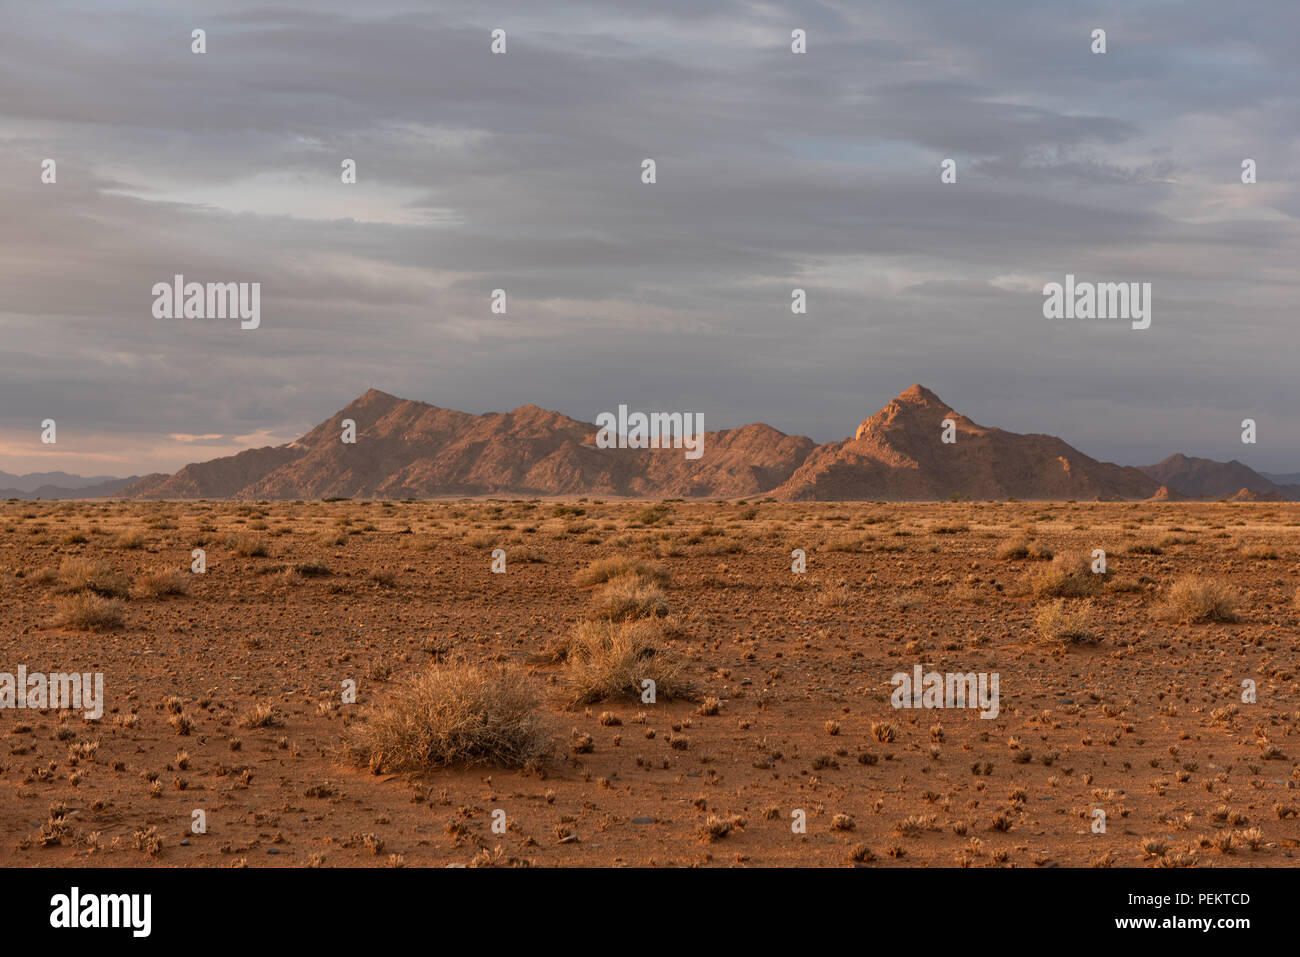 Early morning light lighting up mountains and grass in desert countryside, Namibia - Stock Image